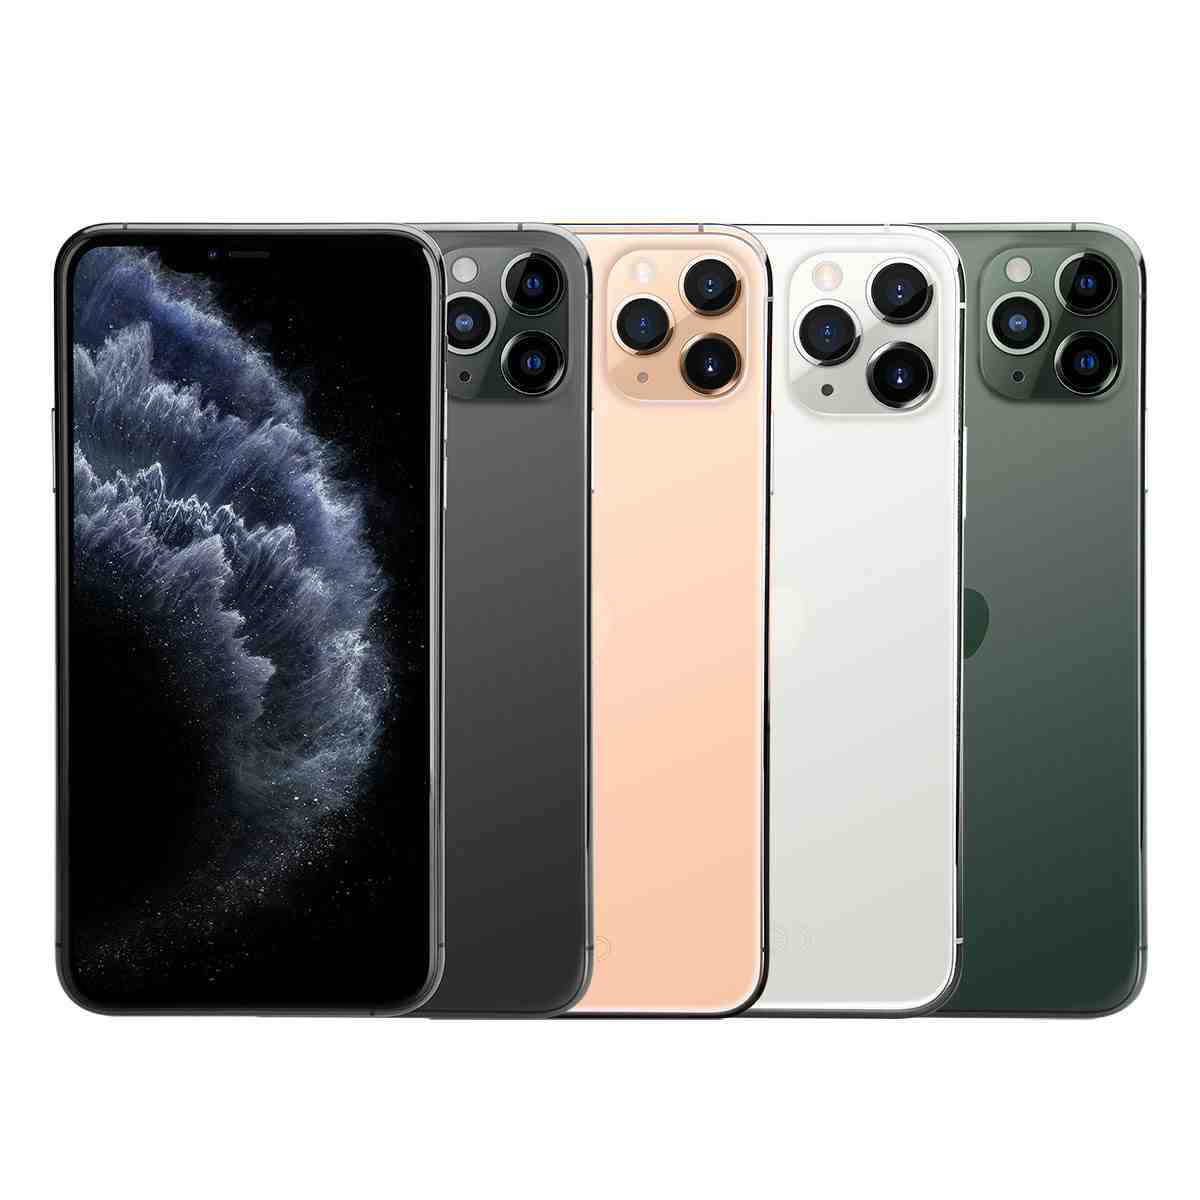 How much does iPhone 11 Pro Max cost in UK?